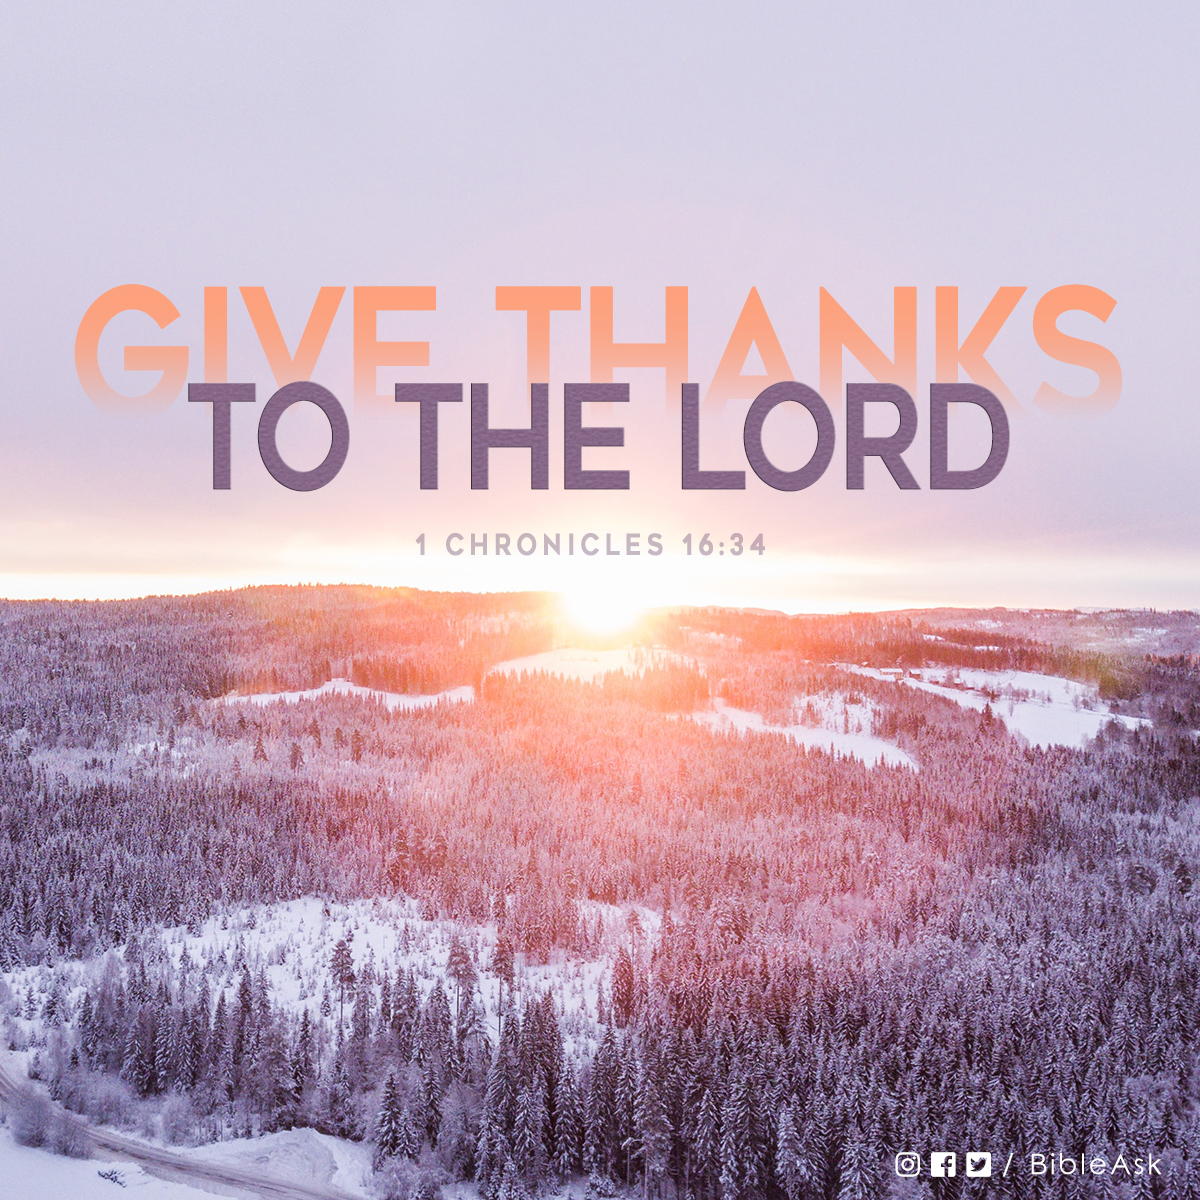 Today, let us remember to 'Give thanks to the LORD, for He is good.' #verseoftheday⠀⠀ .⠀⠀ .⠀⠀ .⠀⠀ .⠀⠀ #dailybibleverse #bible #verse #biblequote #bible #Godisgood #givethanks #blessed #faith #faithquotes #dailyinspiration #scripturequotes #goodmorning #votd #bibleask